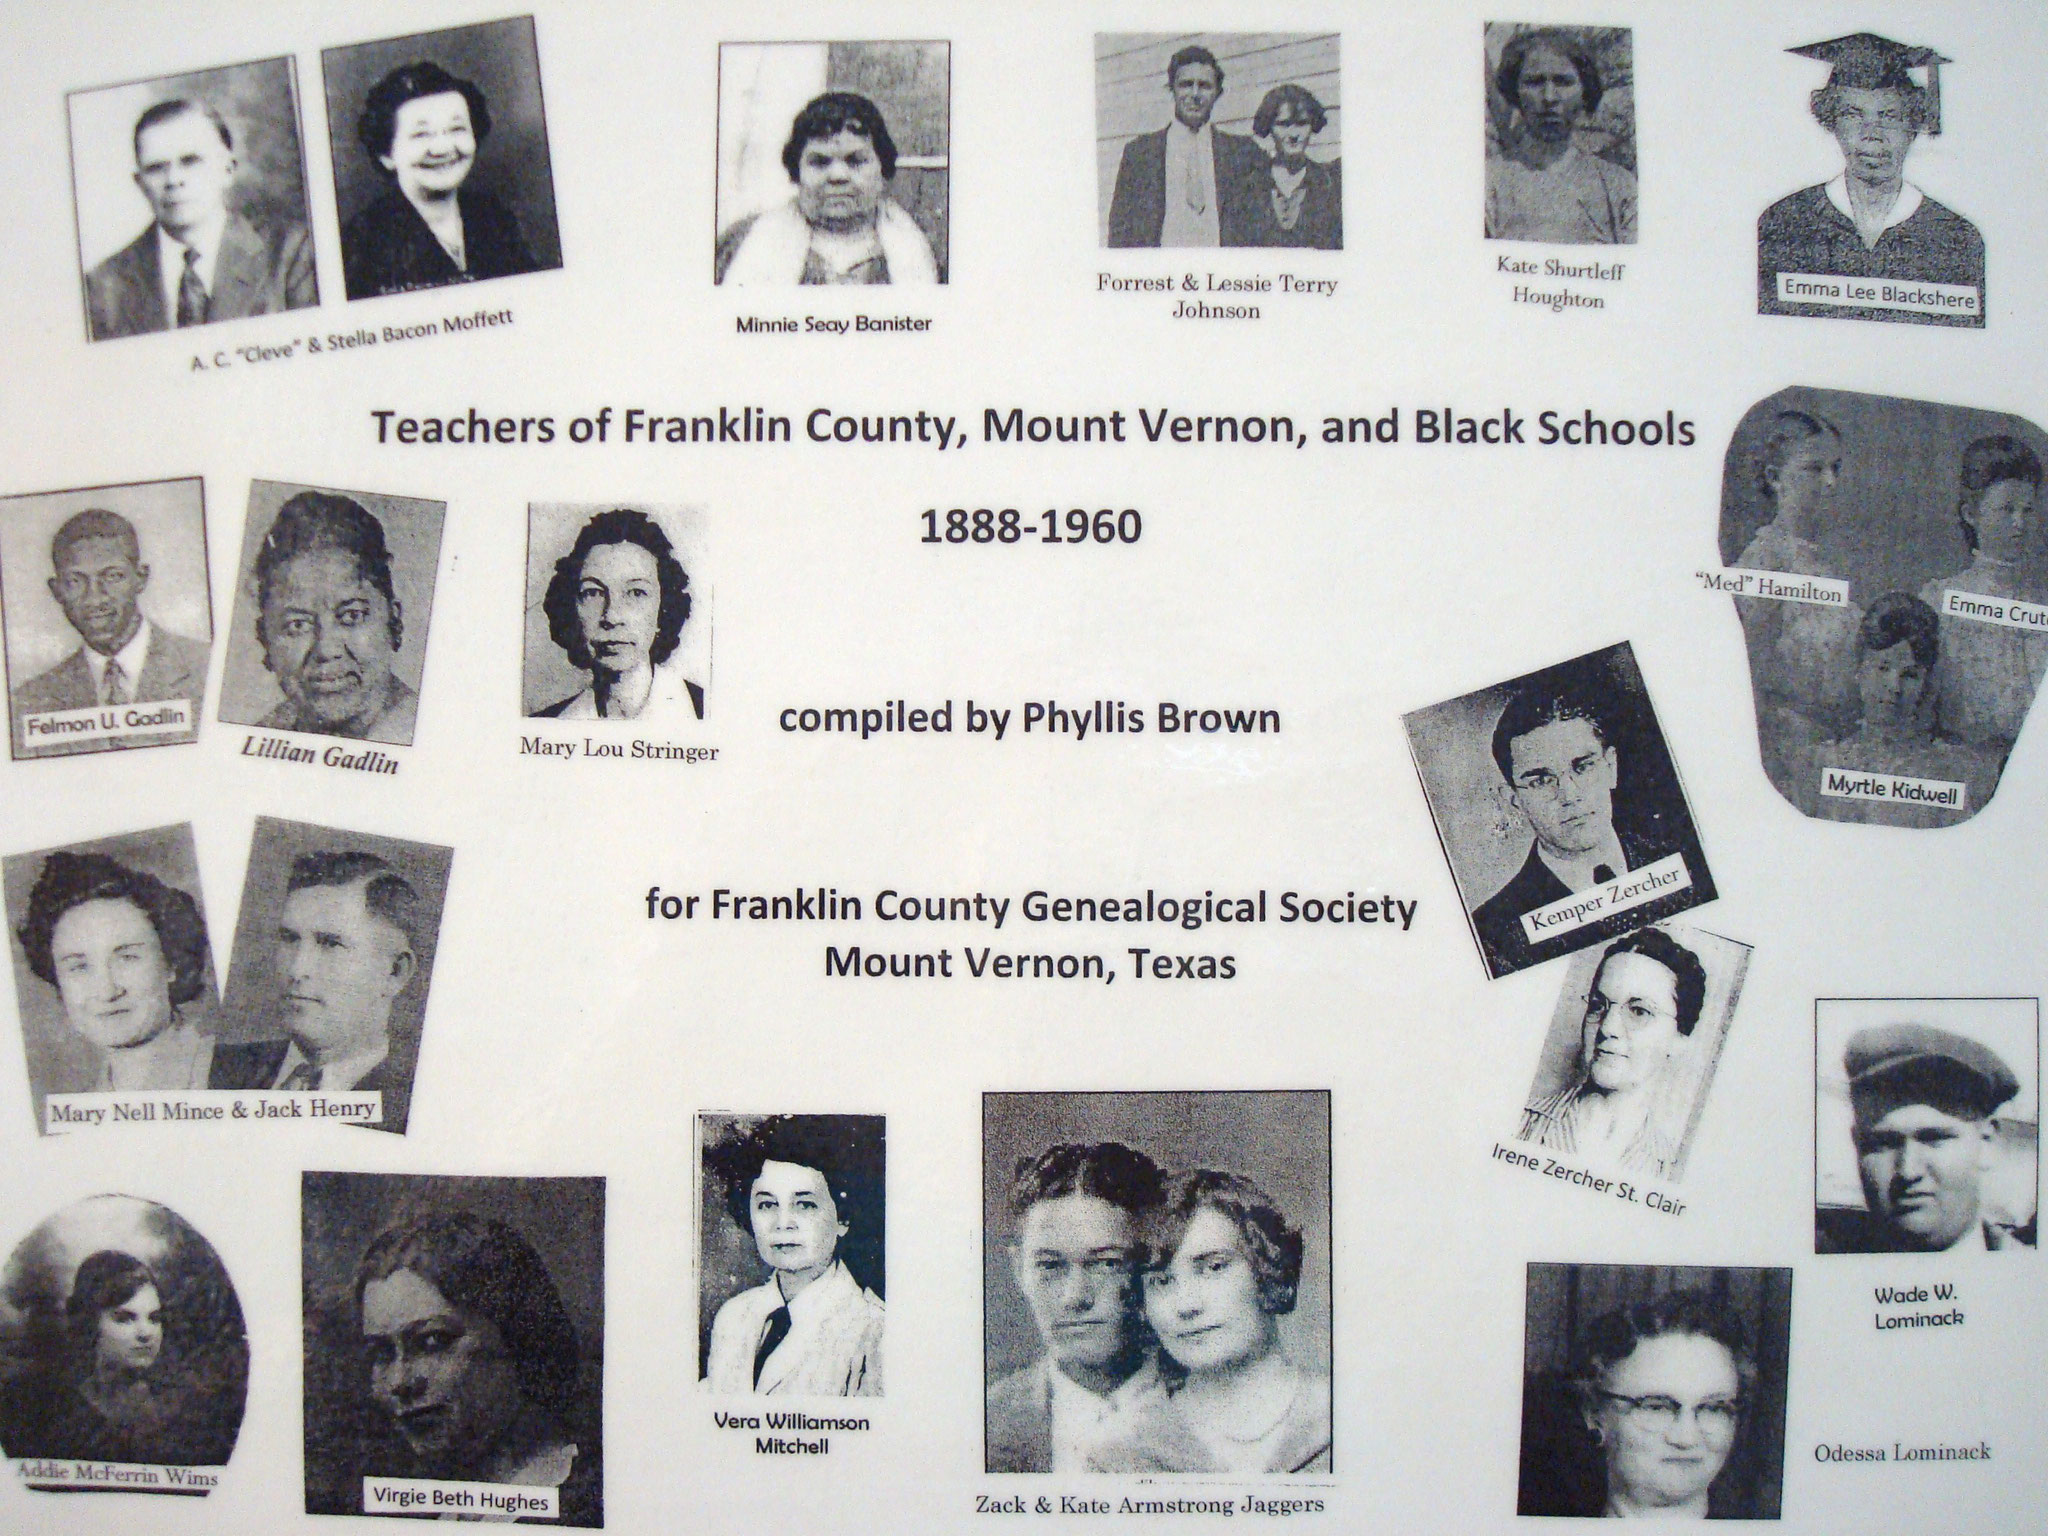 Cover of Teachers of Franklin County, Mount Vernon, and Black Schools, 1888-1960